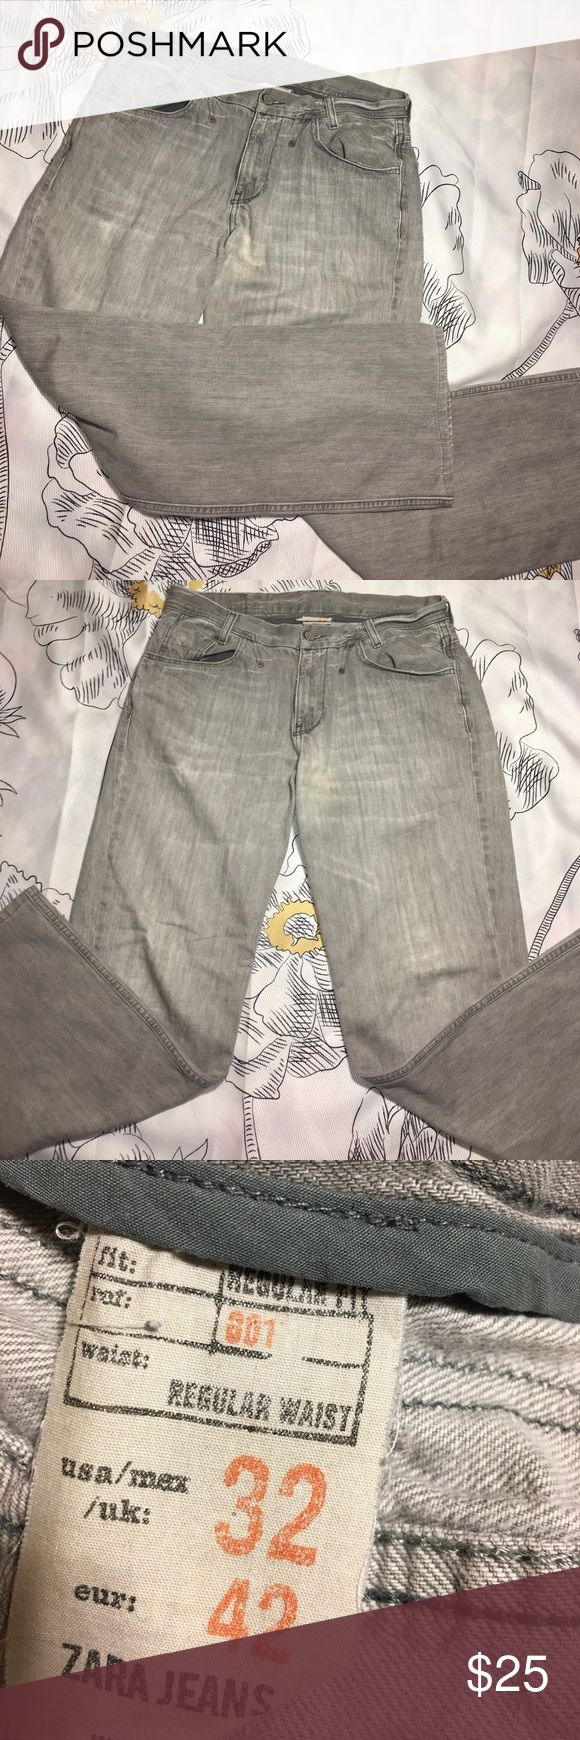 Zara Jeans Regular Fit x Waist 32 x Denim Size 32 - great condition Zara Jeans